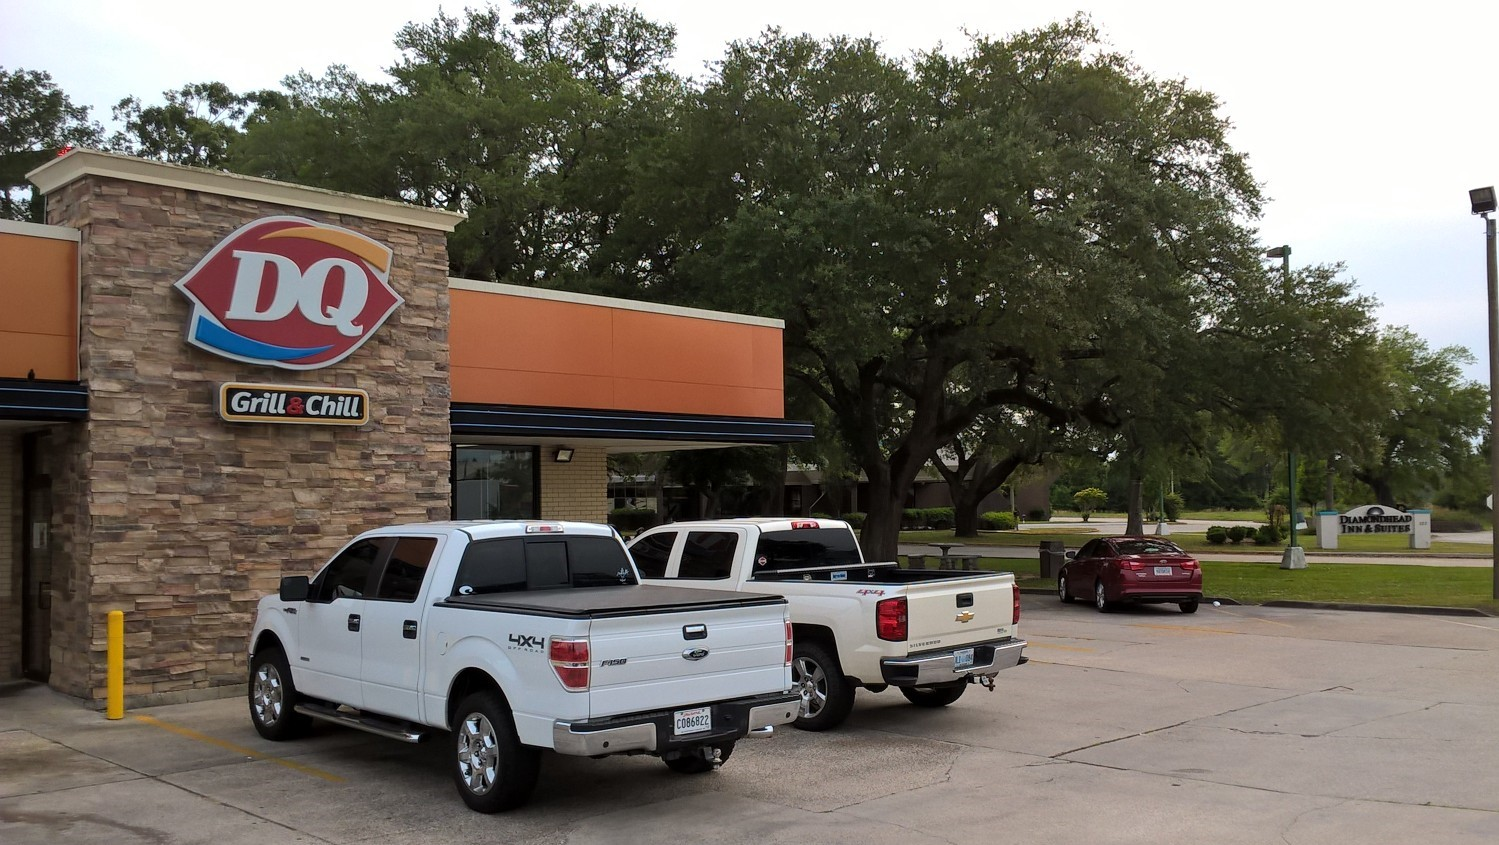 DQ at INN ENTRANCE